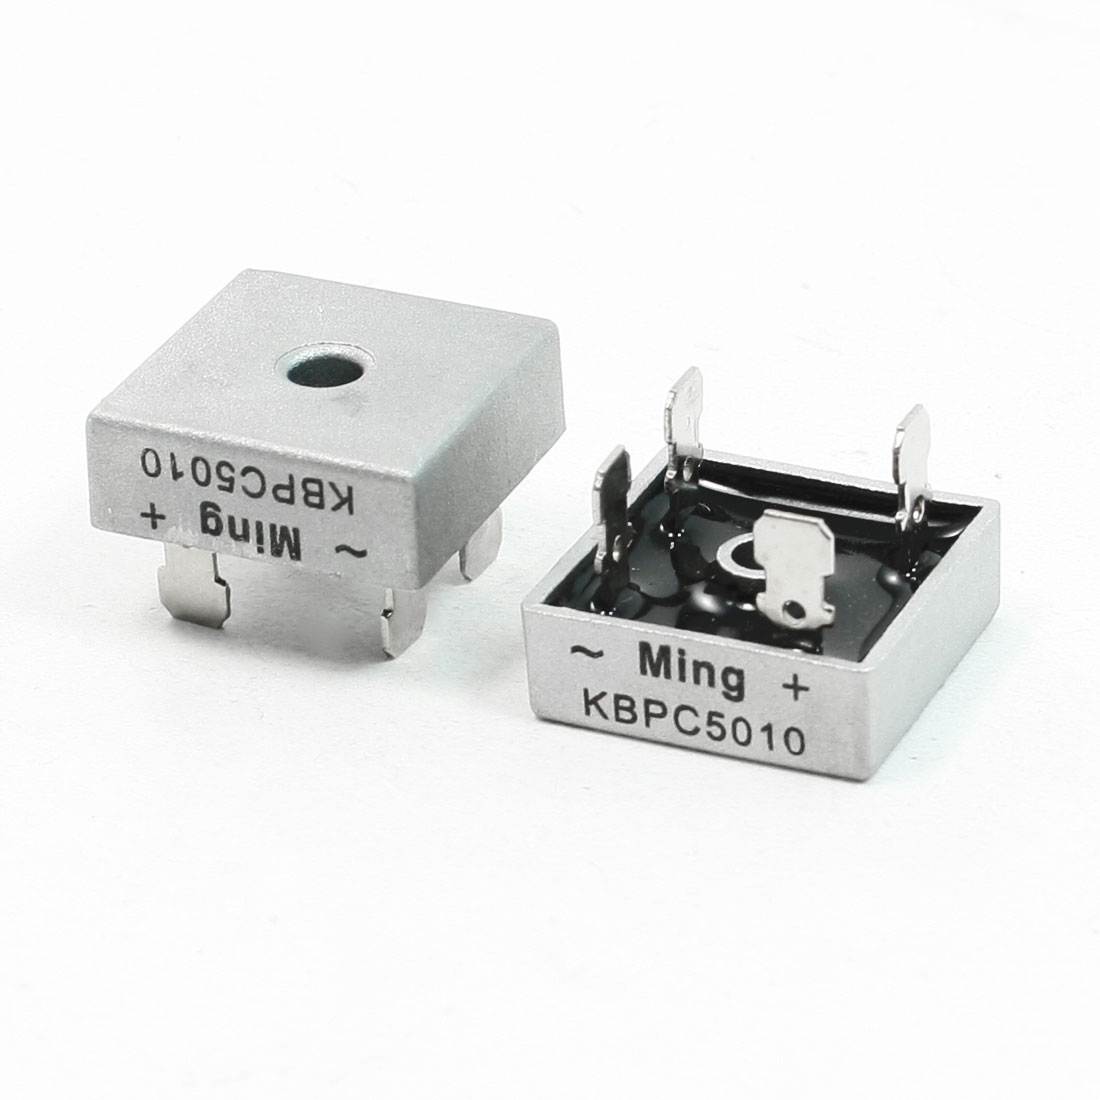 2 Pcs Ming KBPC5010 4 Pins 1000V 50A Bridge Rectifier